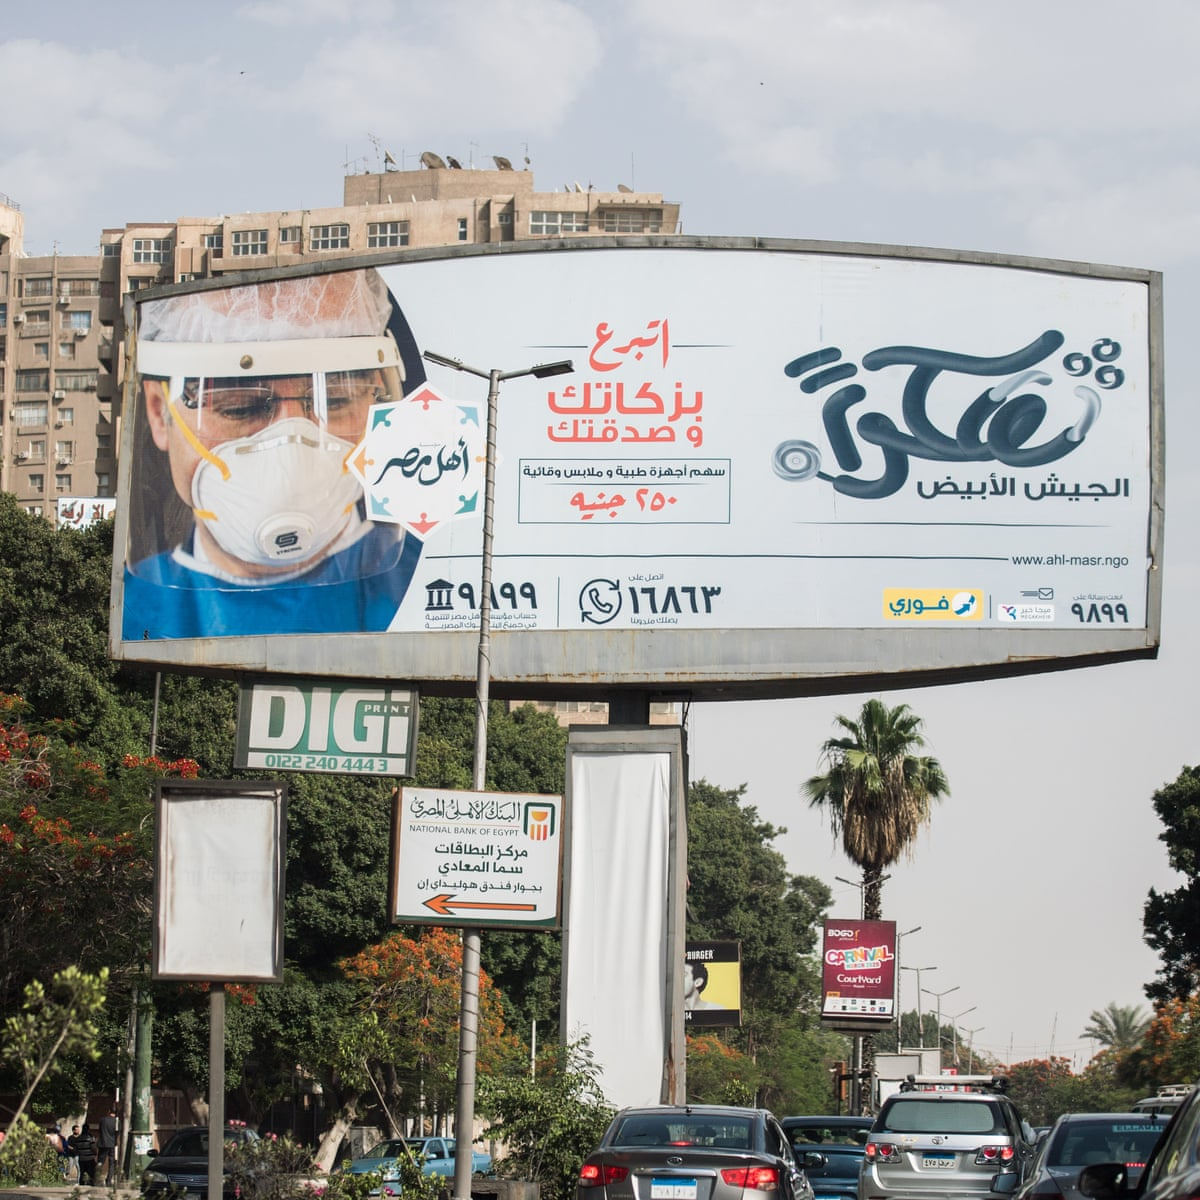 It S A Disaster Egypt S Doctors Plead For More Ppe And Testing Global Development The Guardian